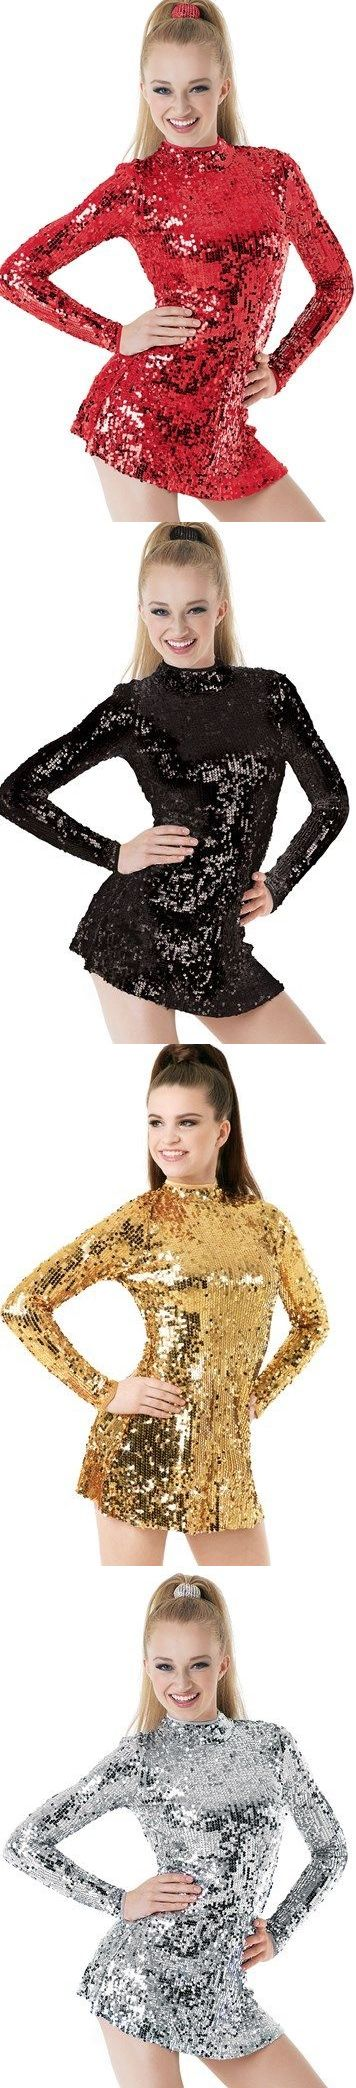 Skating Dresses-Girls 21226: Ice Skating Dress Competition Figure Skating Baton Twirling Costume Adult Child -> BUY IT NOW ONLY: $84.99 on eBay!